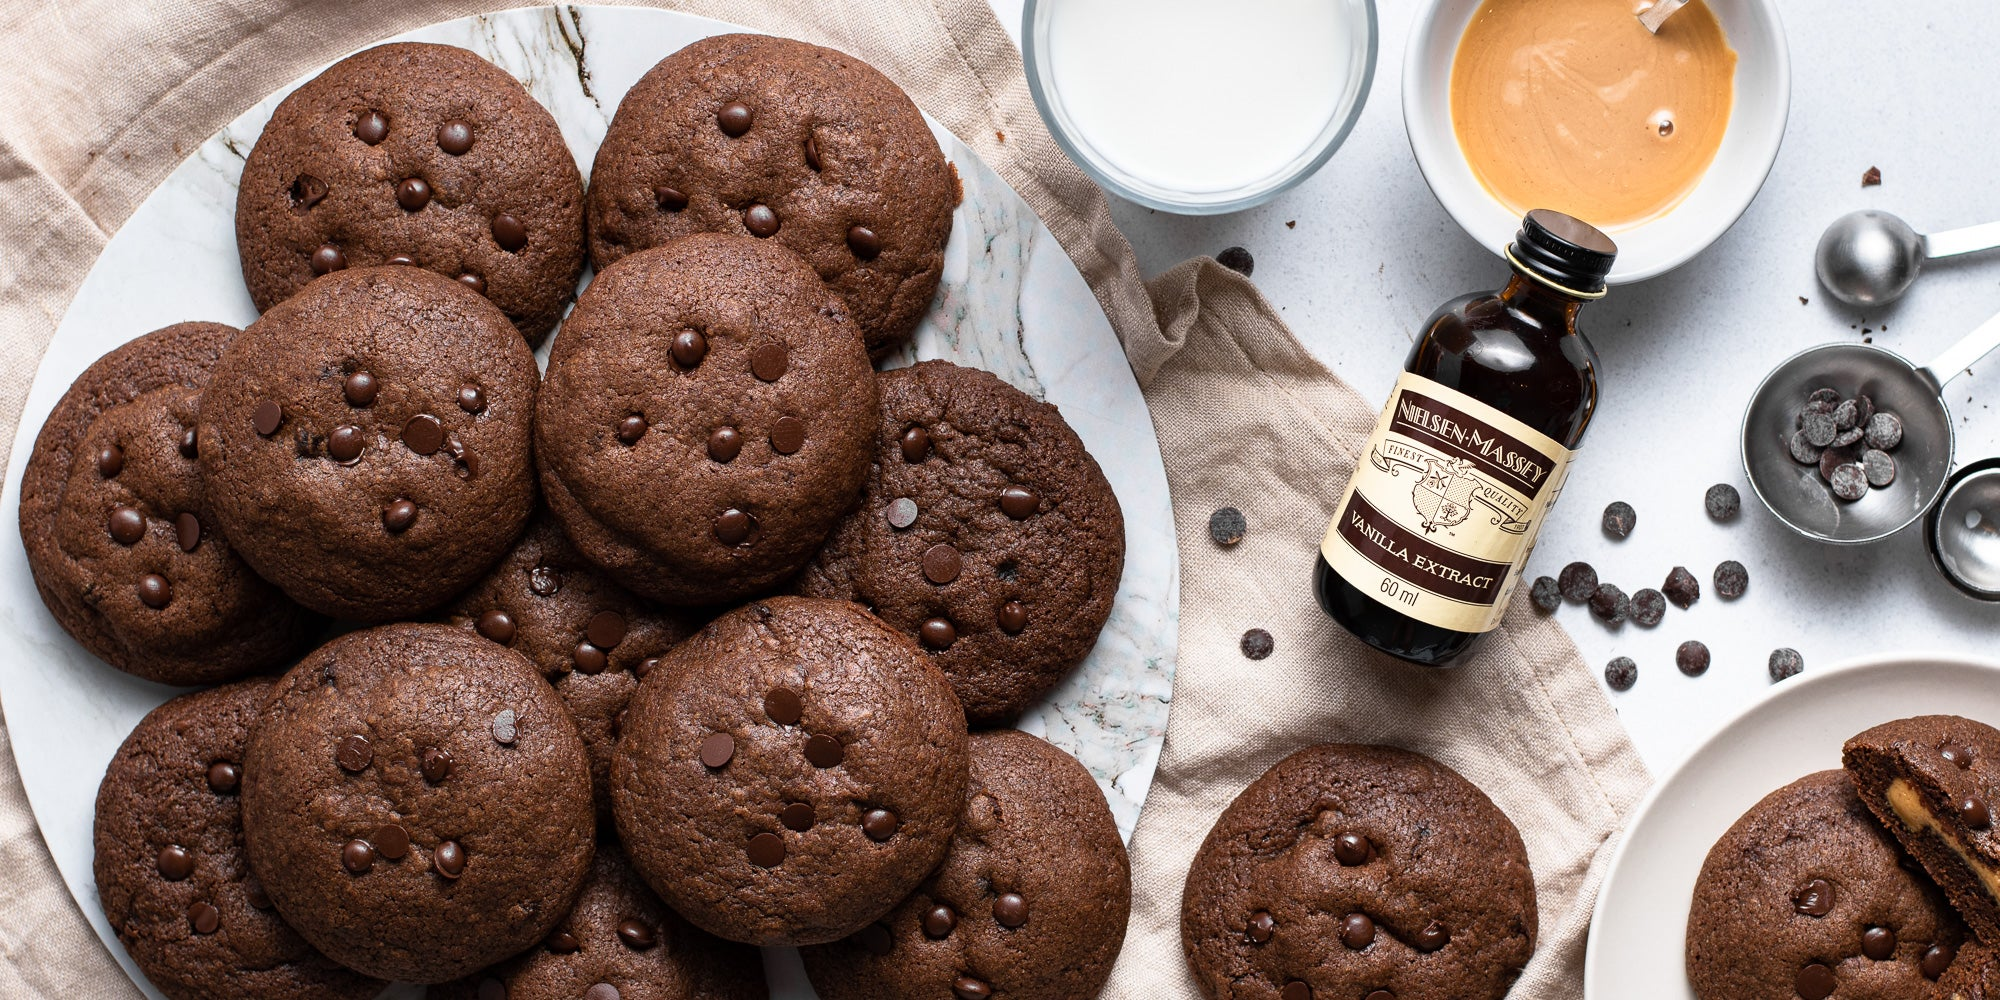 Chocolate & Peanut Butter Stuffed Cookies on a plate next to a bottle of Nielsen-Massey vanilla extract